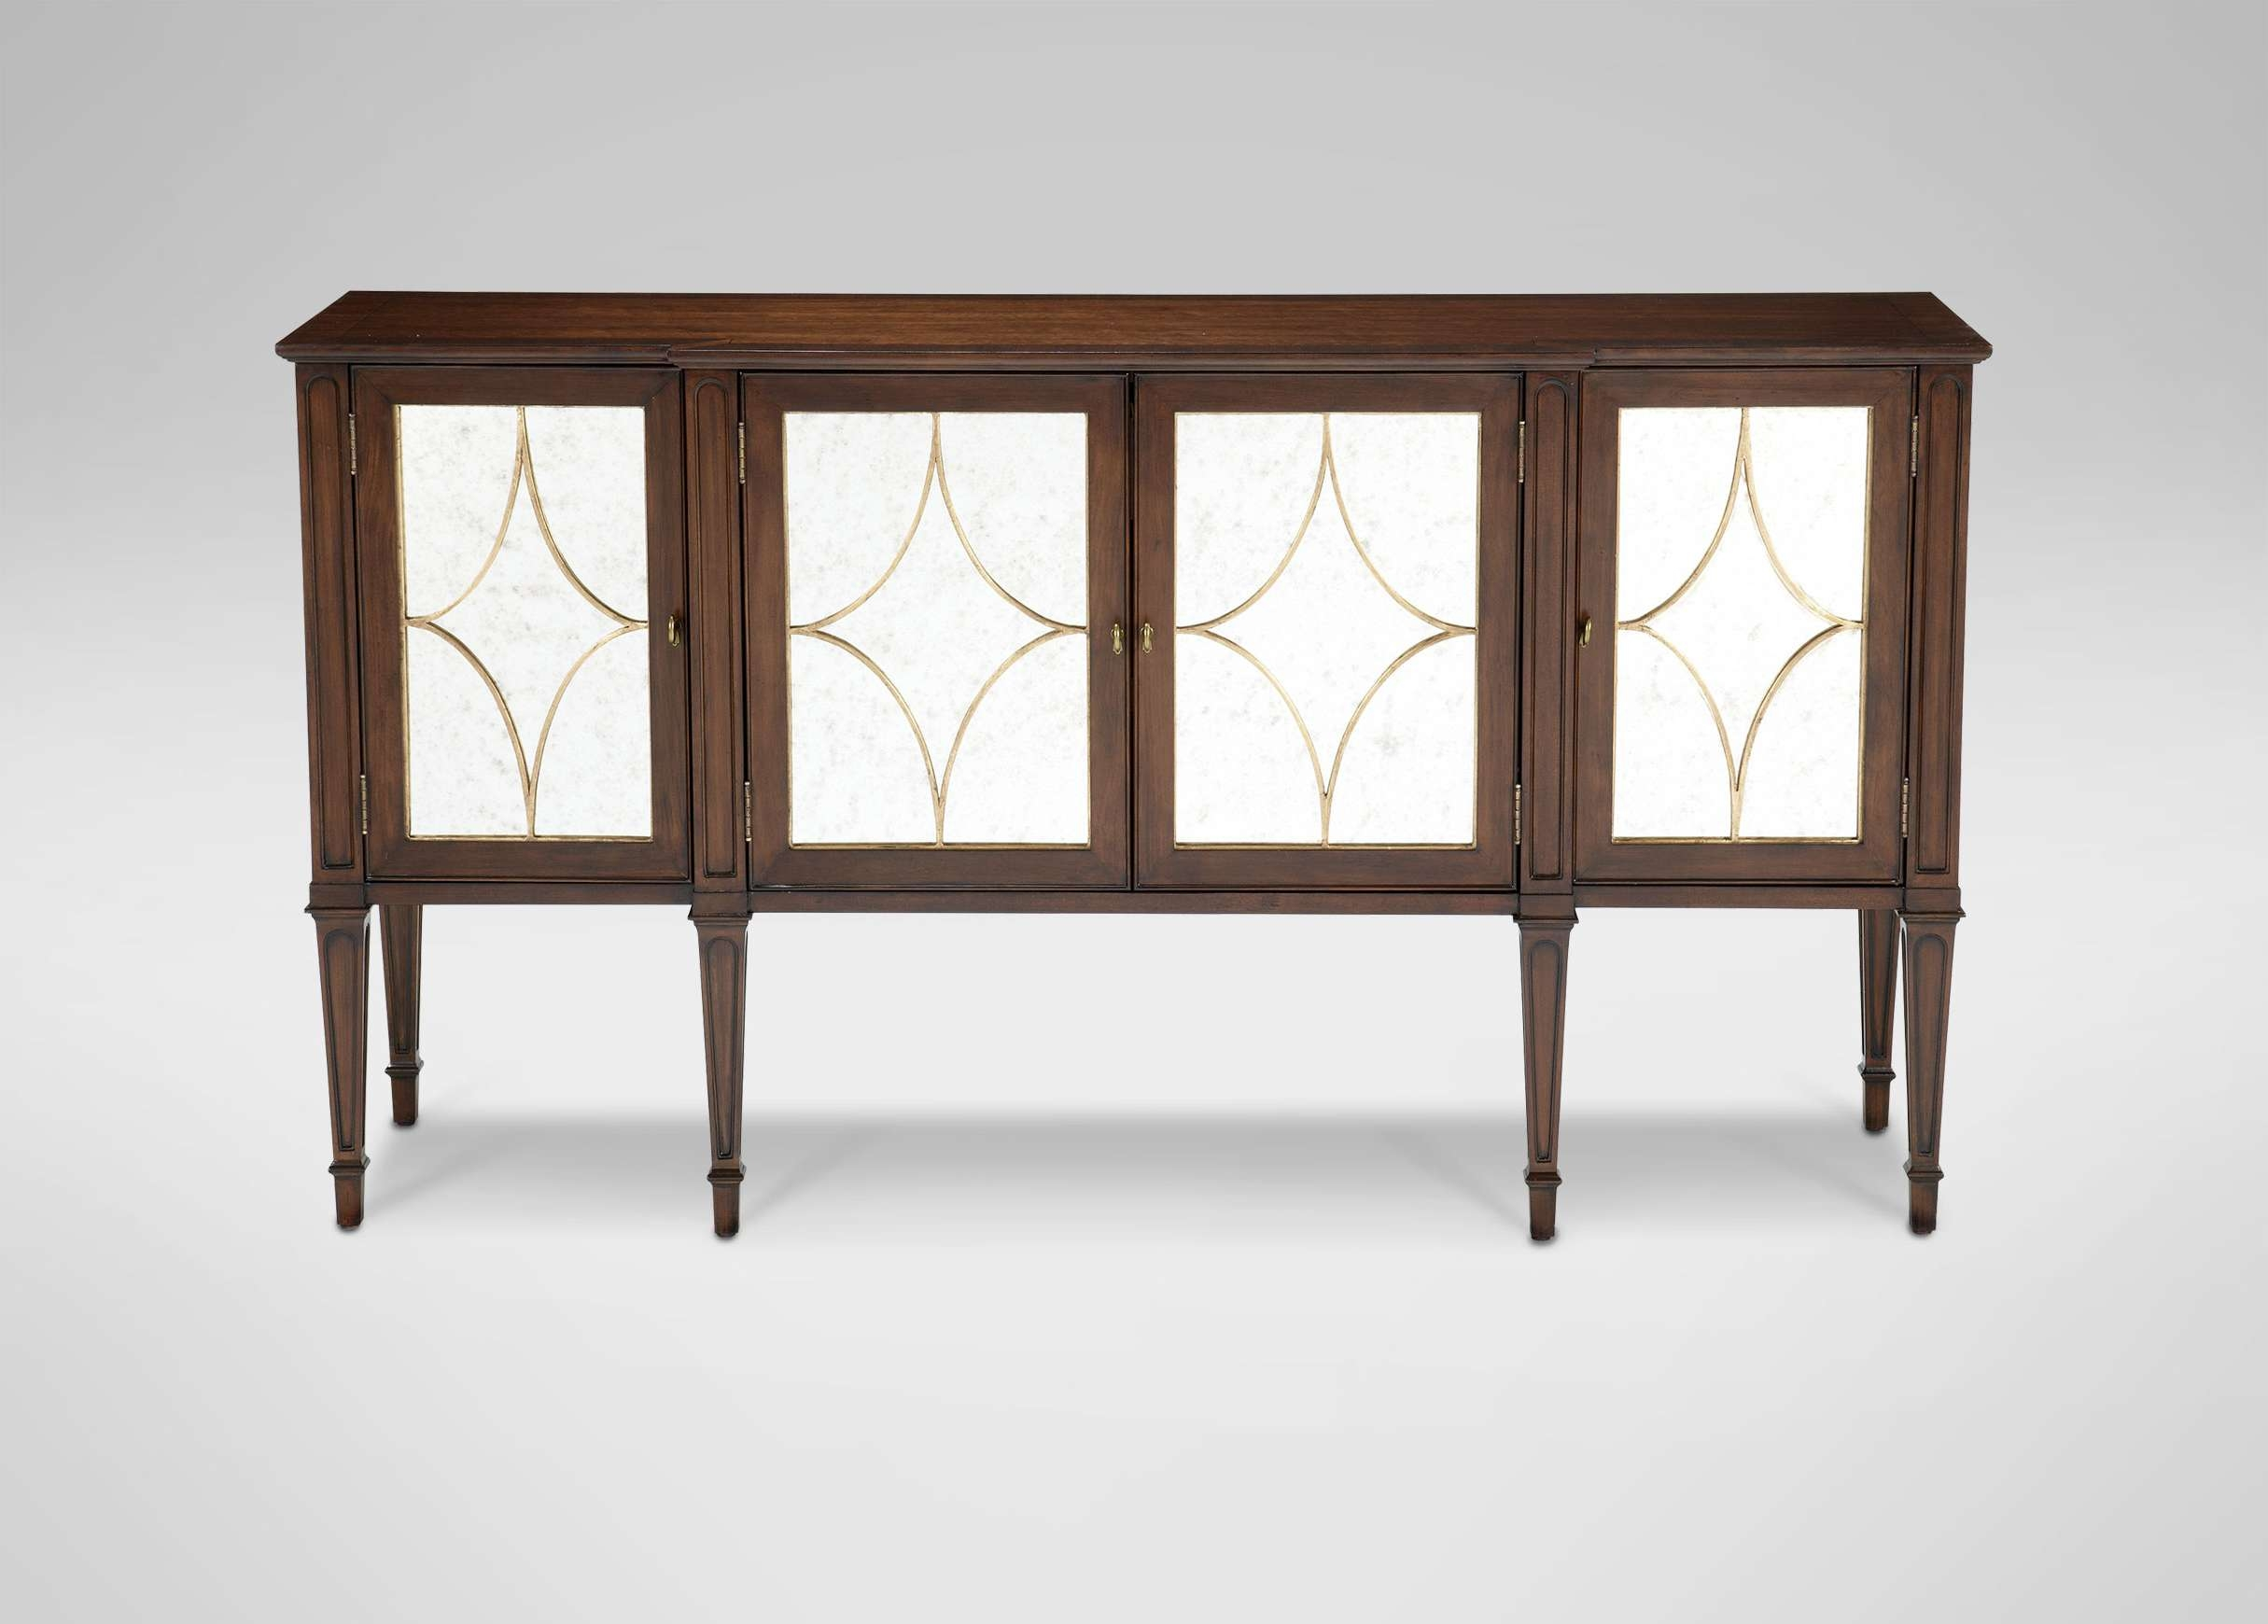 Norwich Sideboard | Buffets, Sideboards & Servers Pertaining To Ethan Allen Sideboards (View 11 of 20)